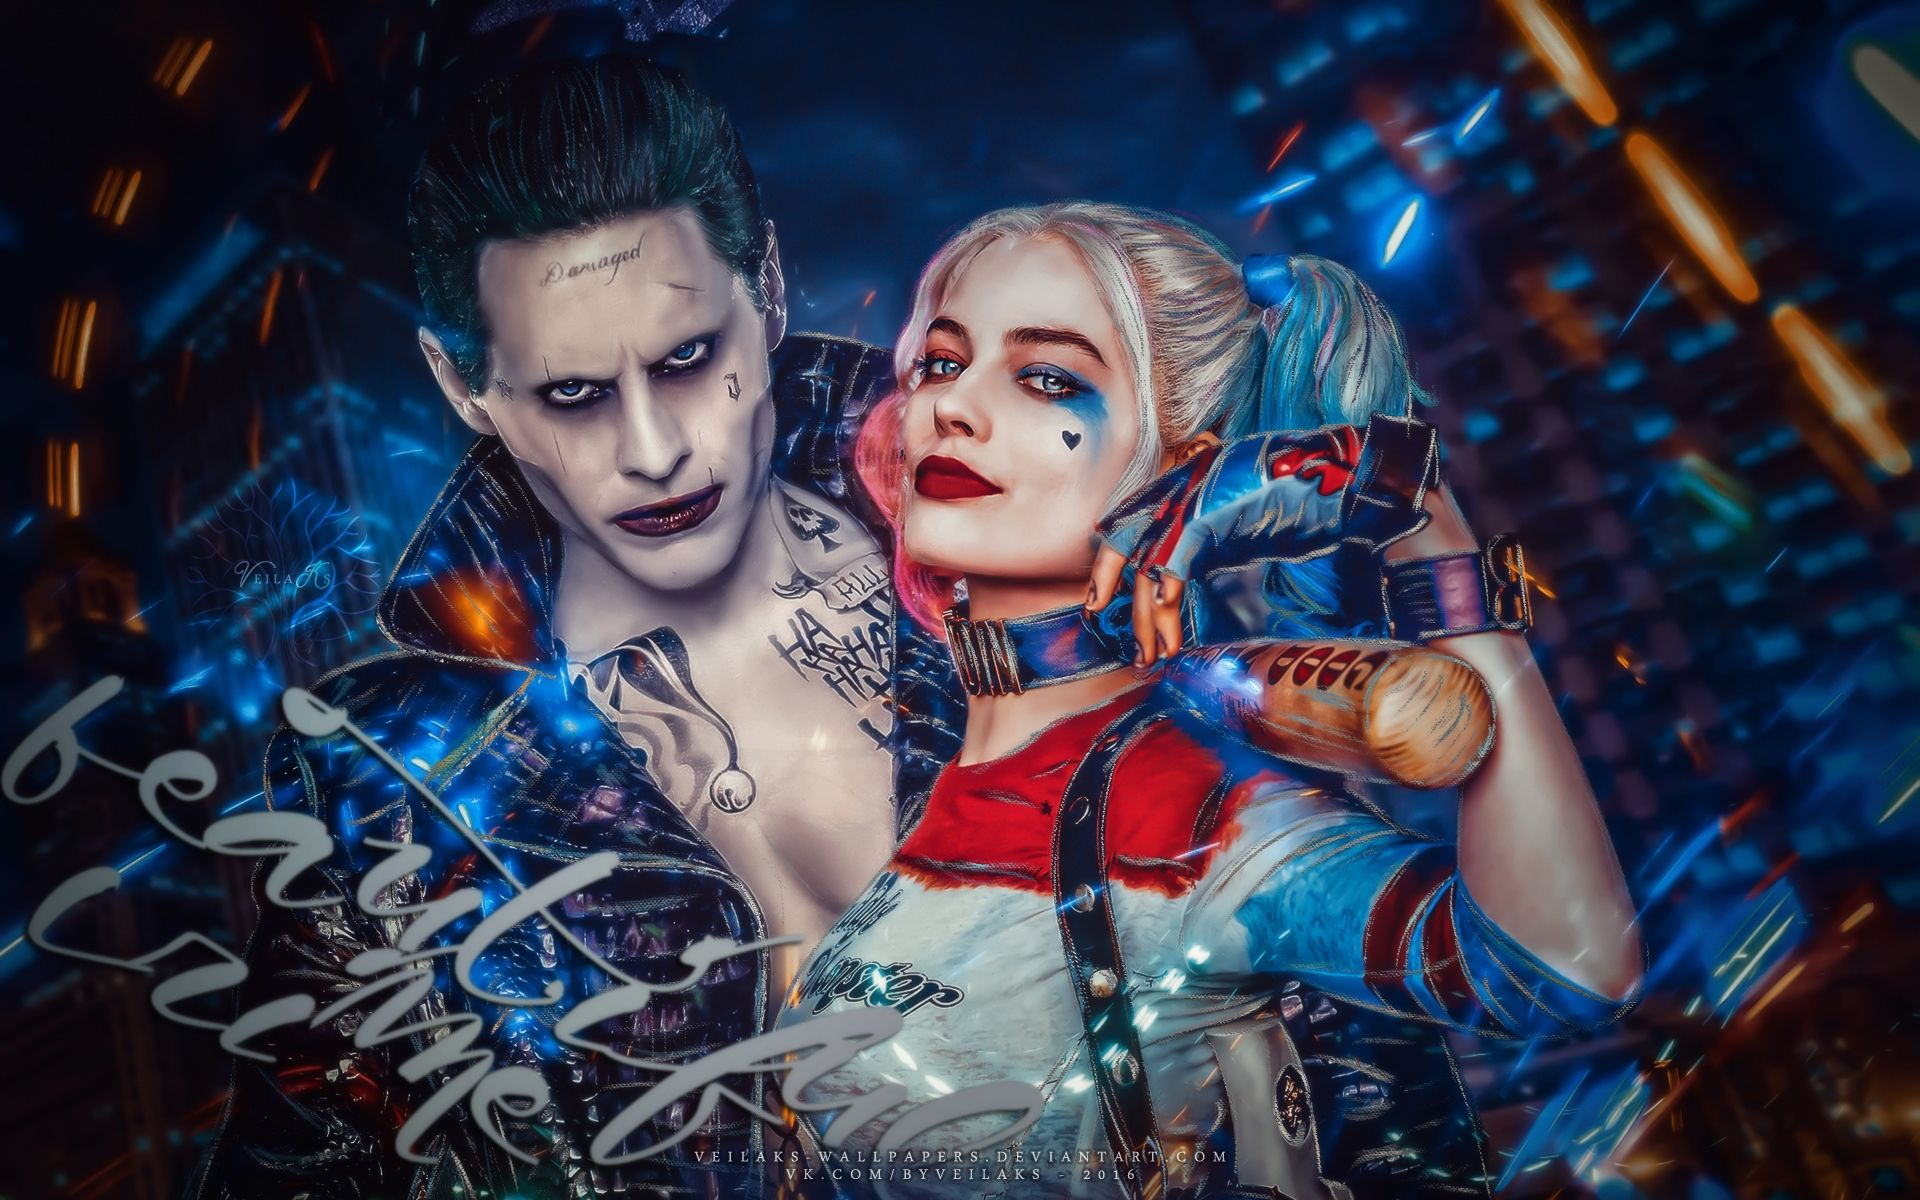 Suicide Squad, Harley Quinn and Joker Wallpaper Theme